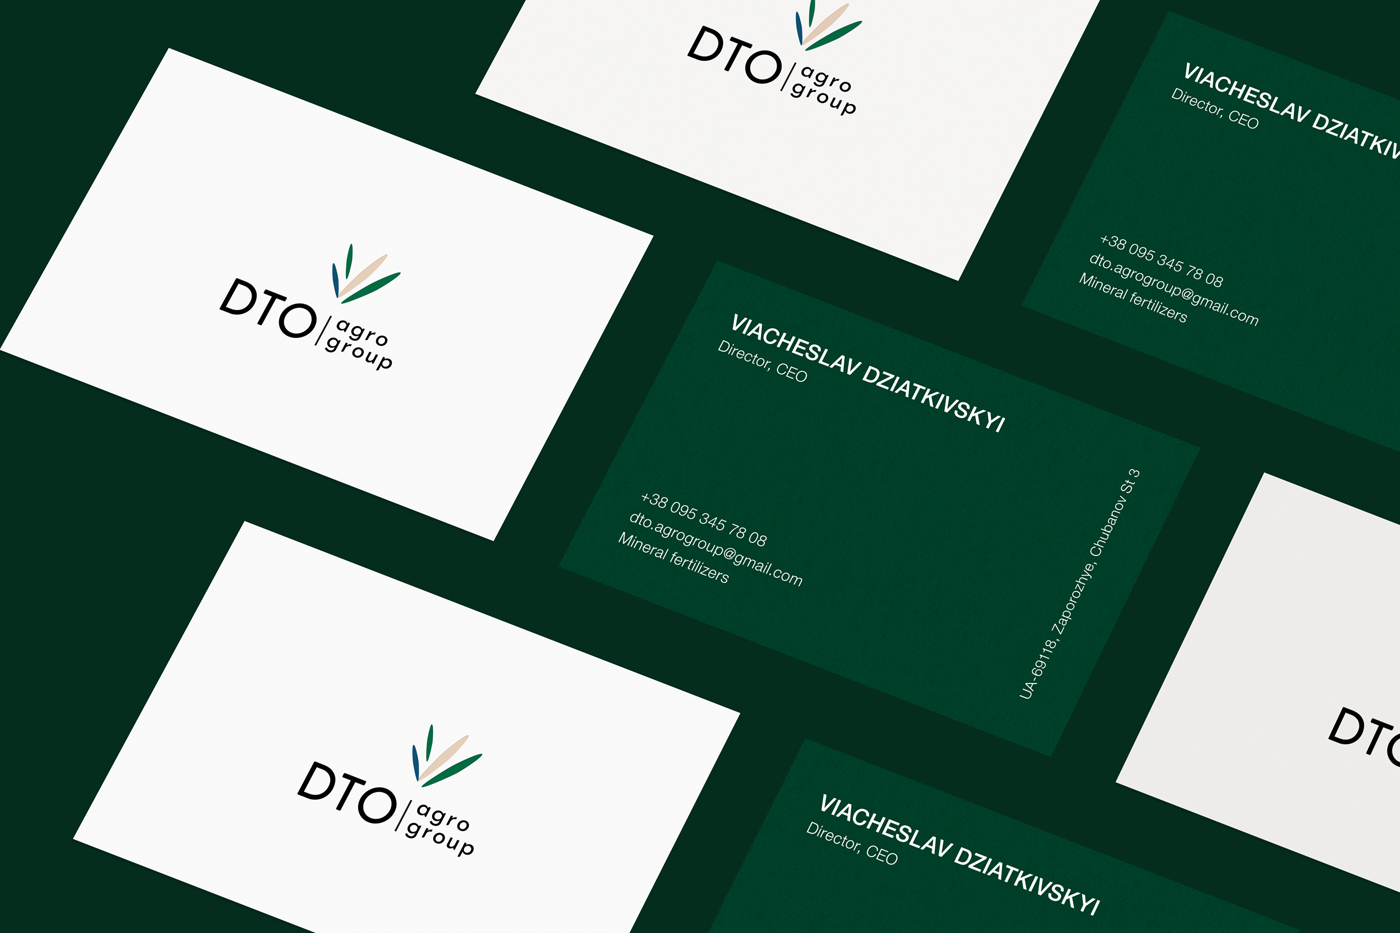 Brand identity and logo. Business cards for Ukrainian agricultural company DTO